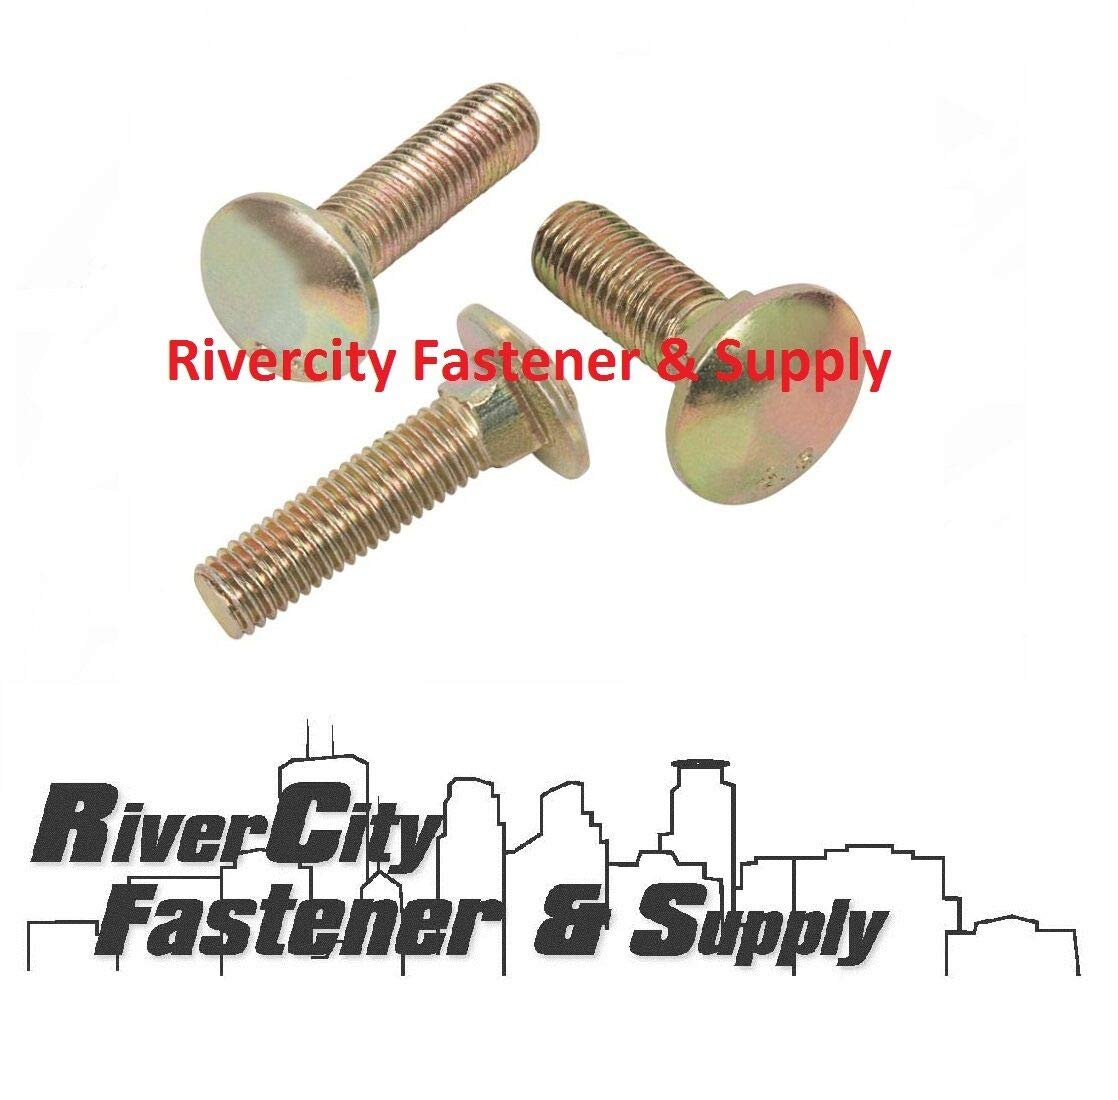 5 Durable and Sturdy M8-1.25x20mm or M8x20 mm Carriage Bolts//Screws 8mm x 20mm Good Holding Power in Different Materials